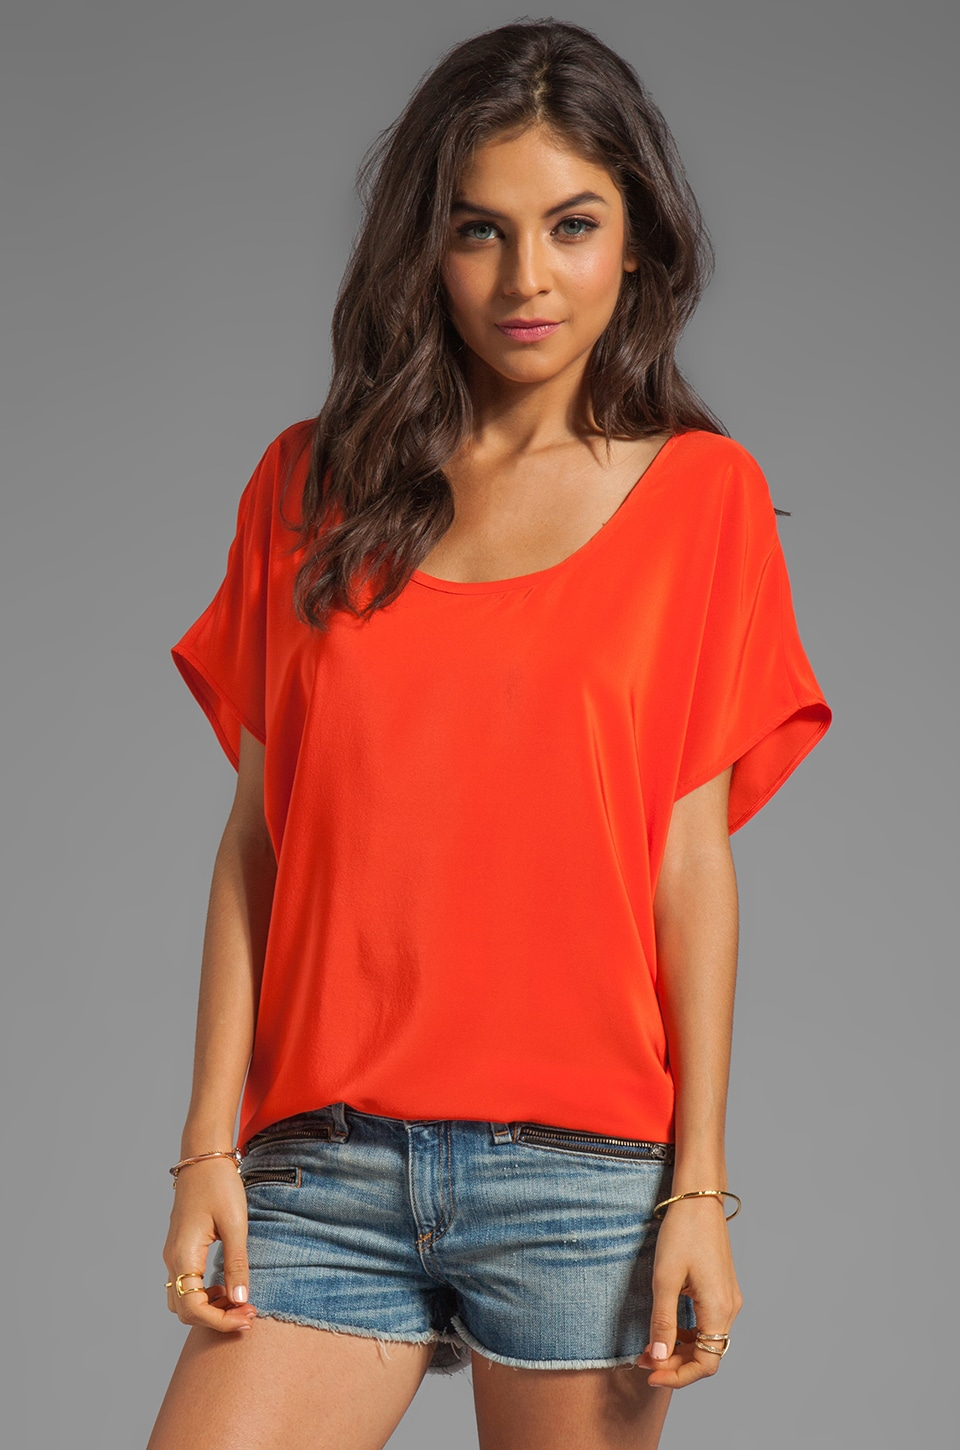 Joie Joann F Silk Top in Spicy Orange